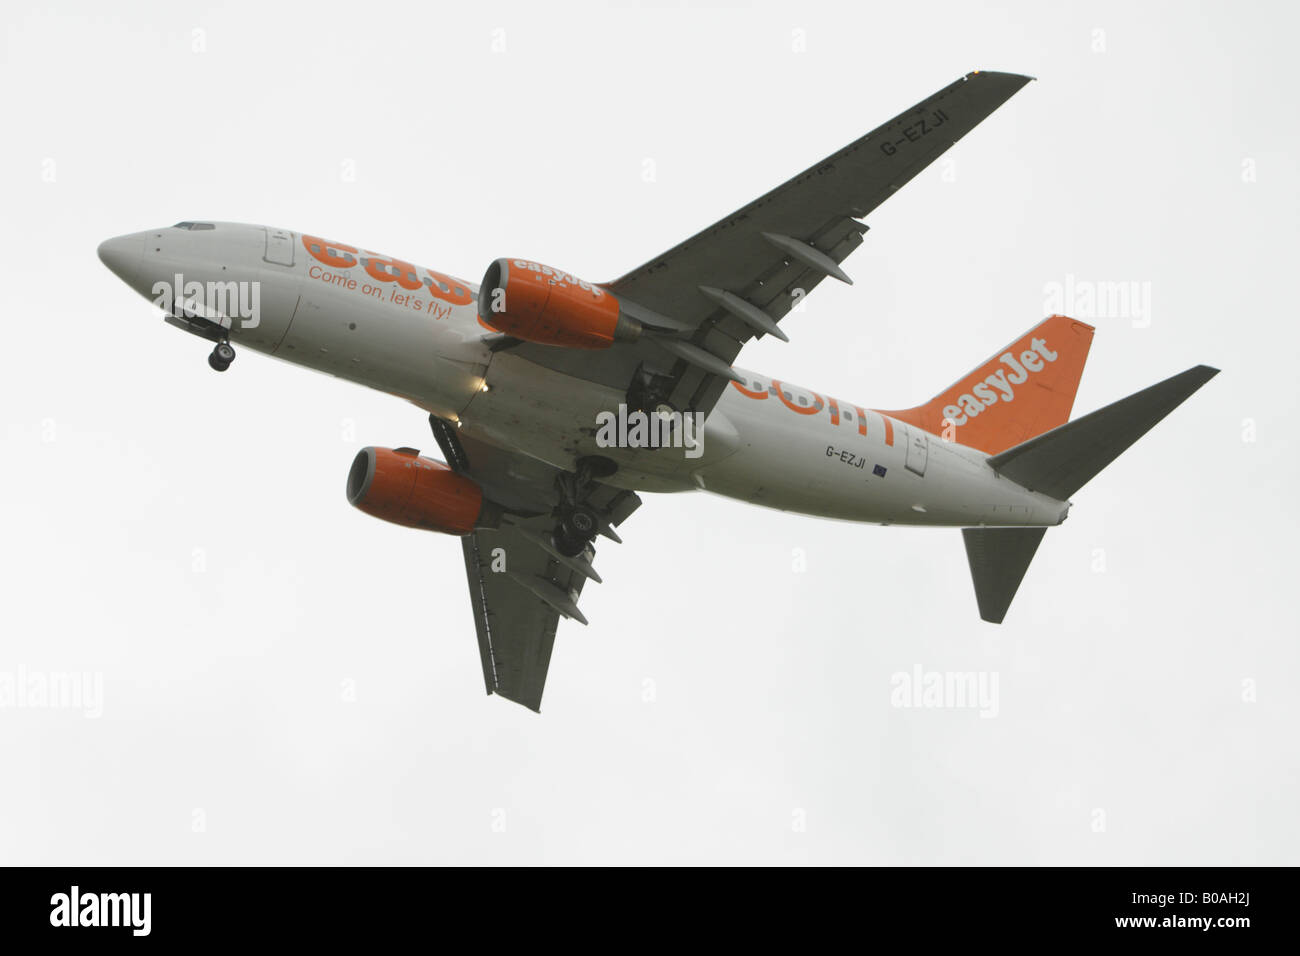 Aircraft on final approach to landing at Luton Airport - Stock Image